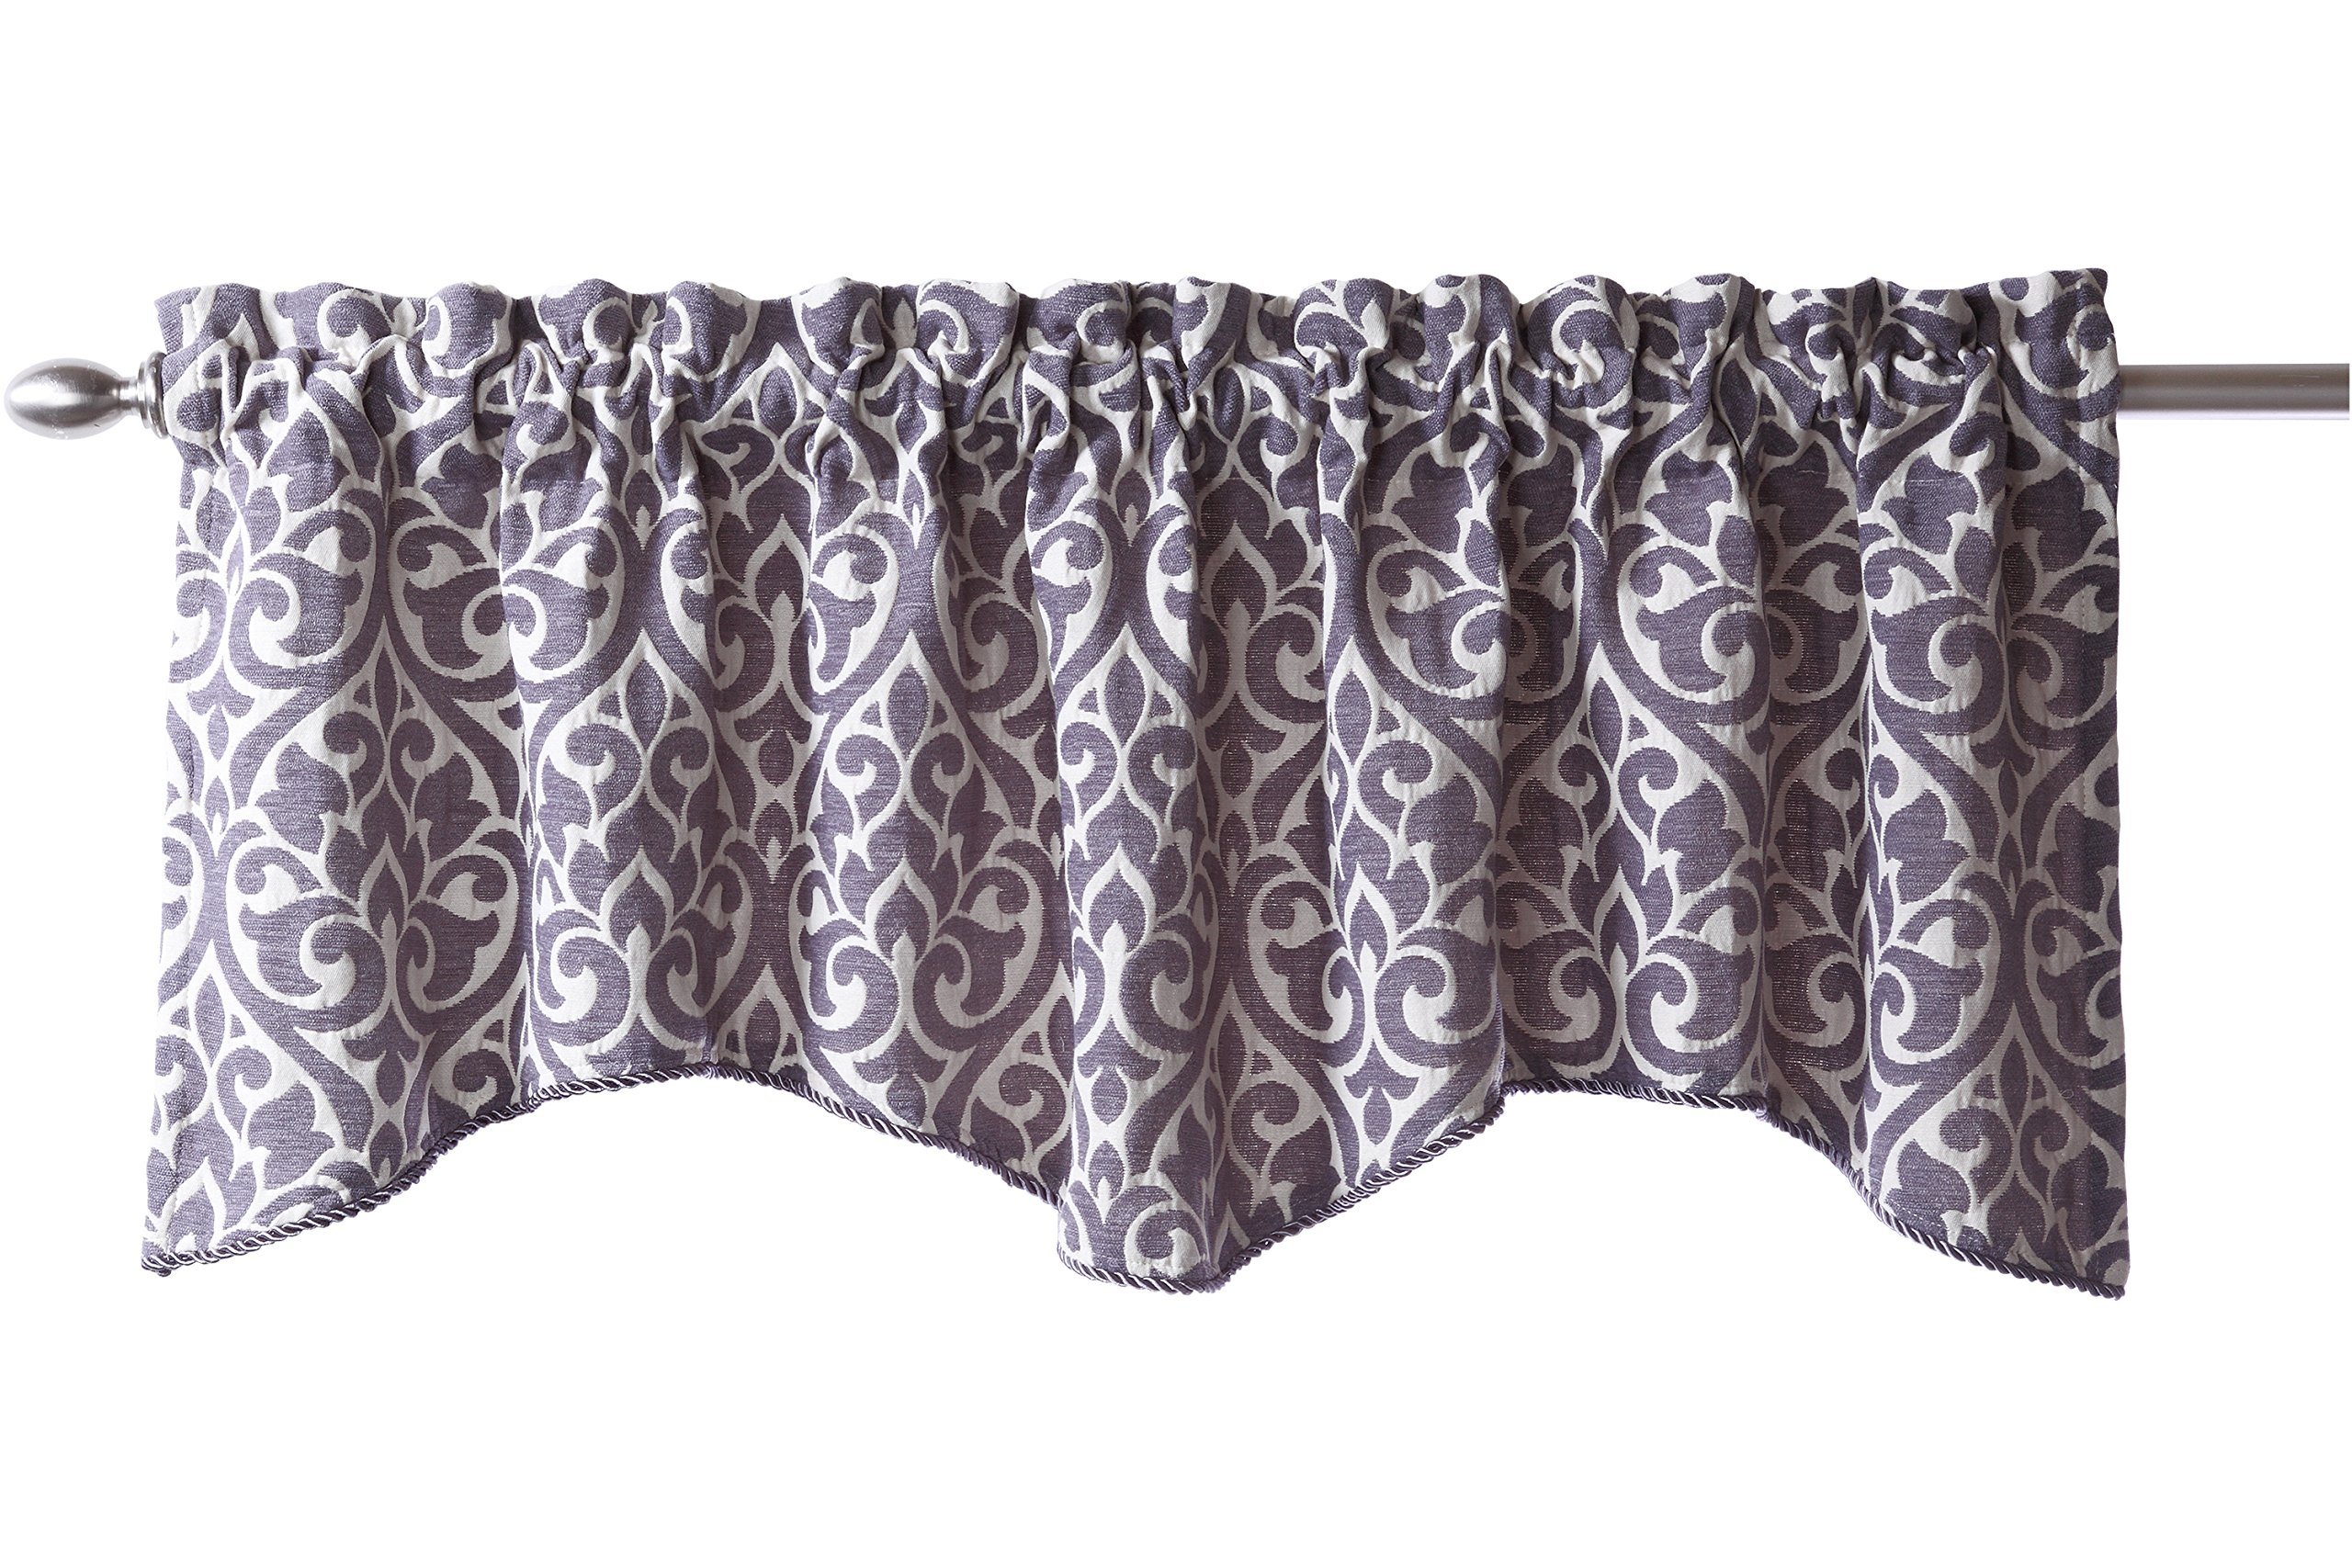 corner pleated embroidered for linen in valance windows valances tailored blend pin window fabric cotton